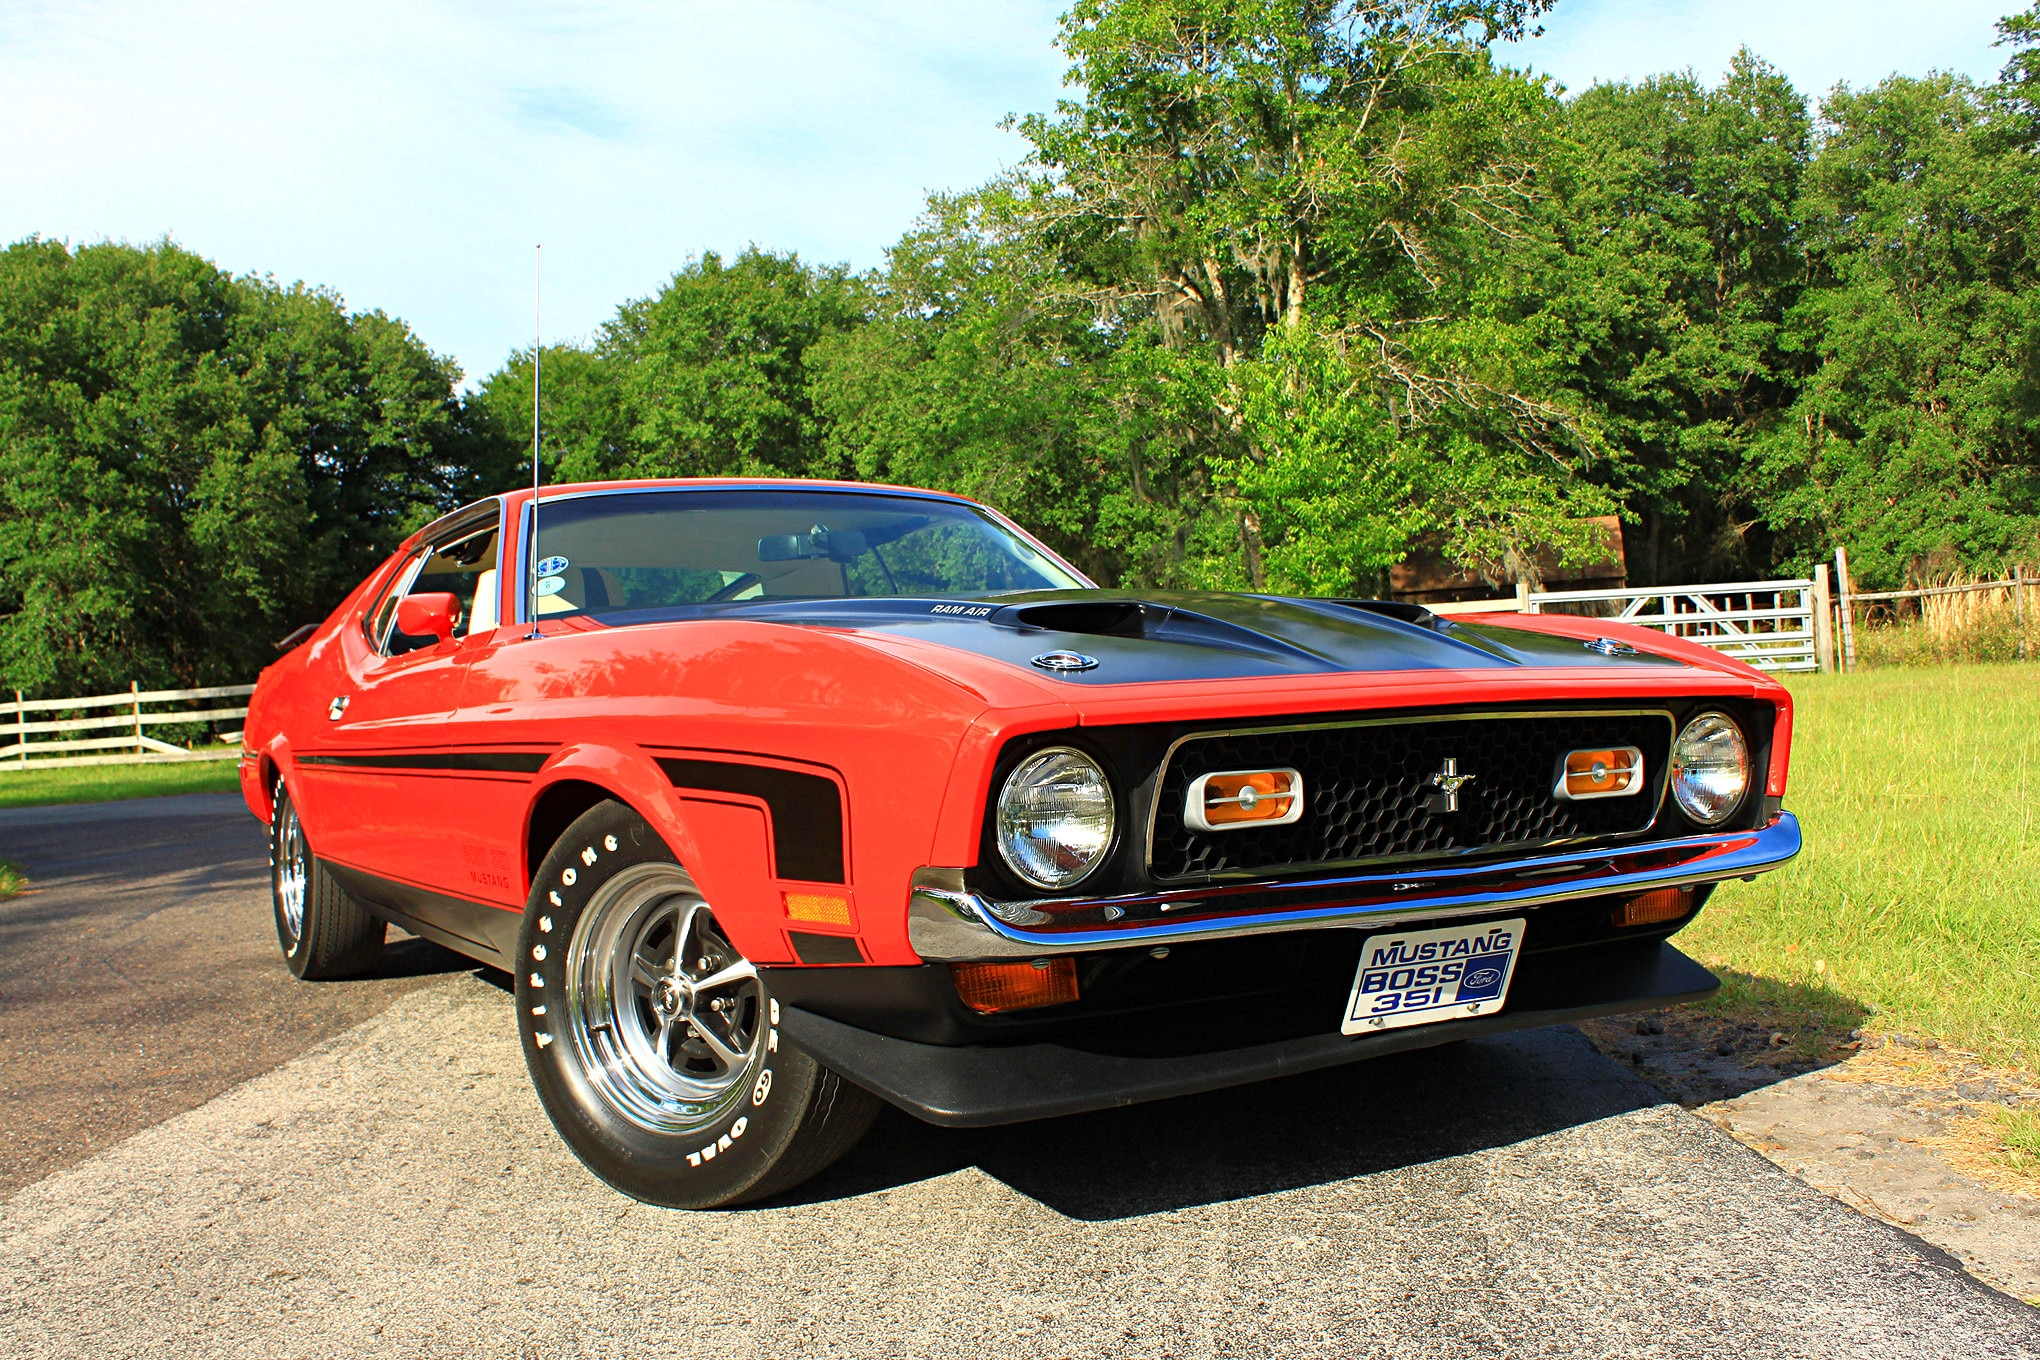 46 1971 Ford Mustang Boss 351 Red Front Three Quarter